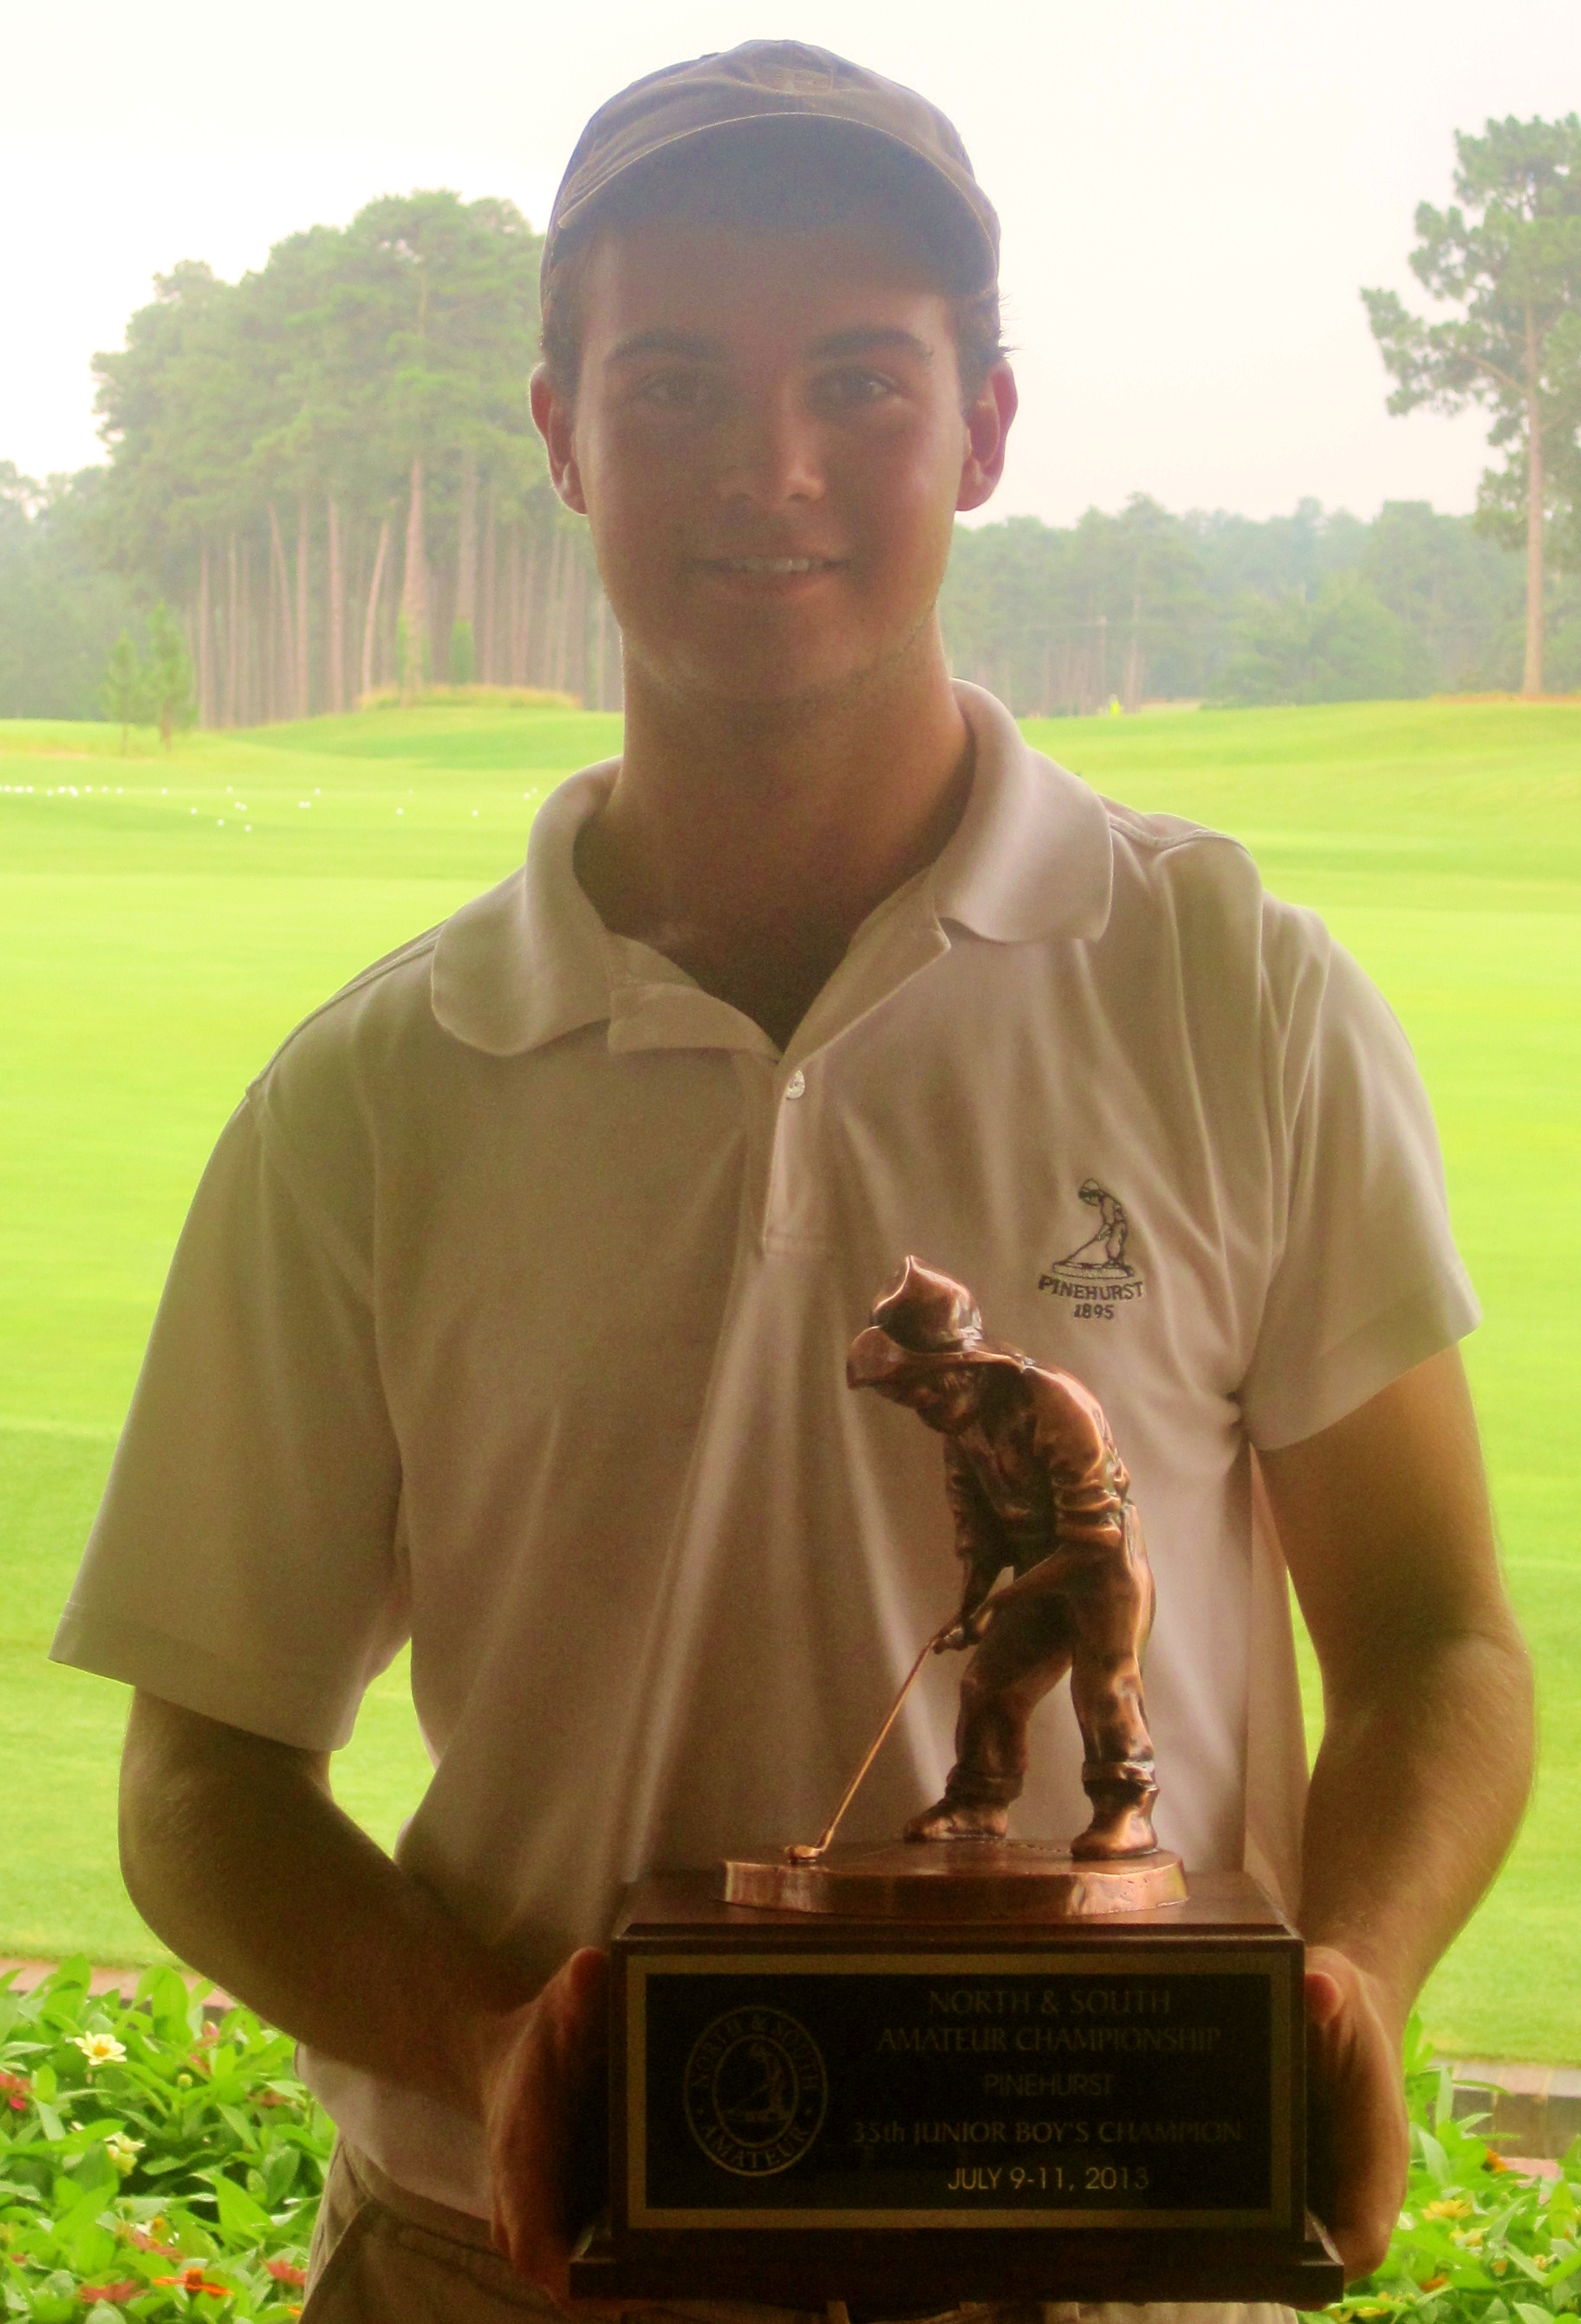 Gastonia's Will Blalock wins the 35th North & South Junior Boys Championship.